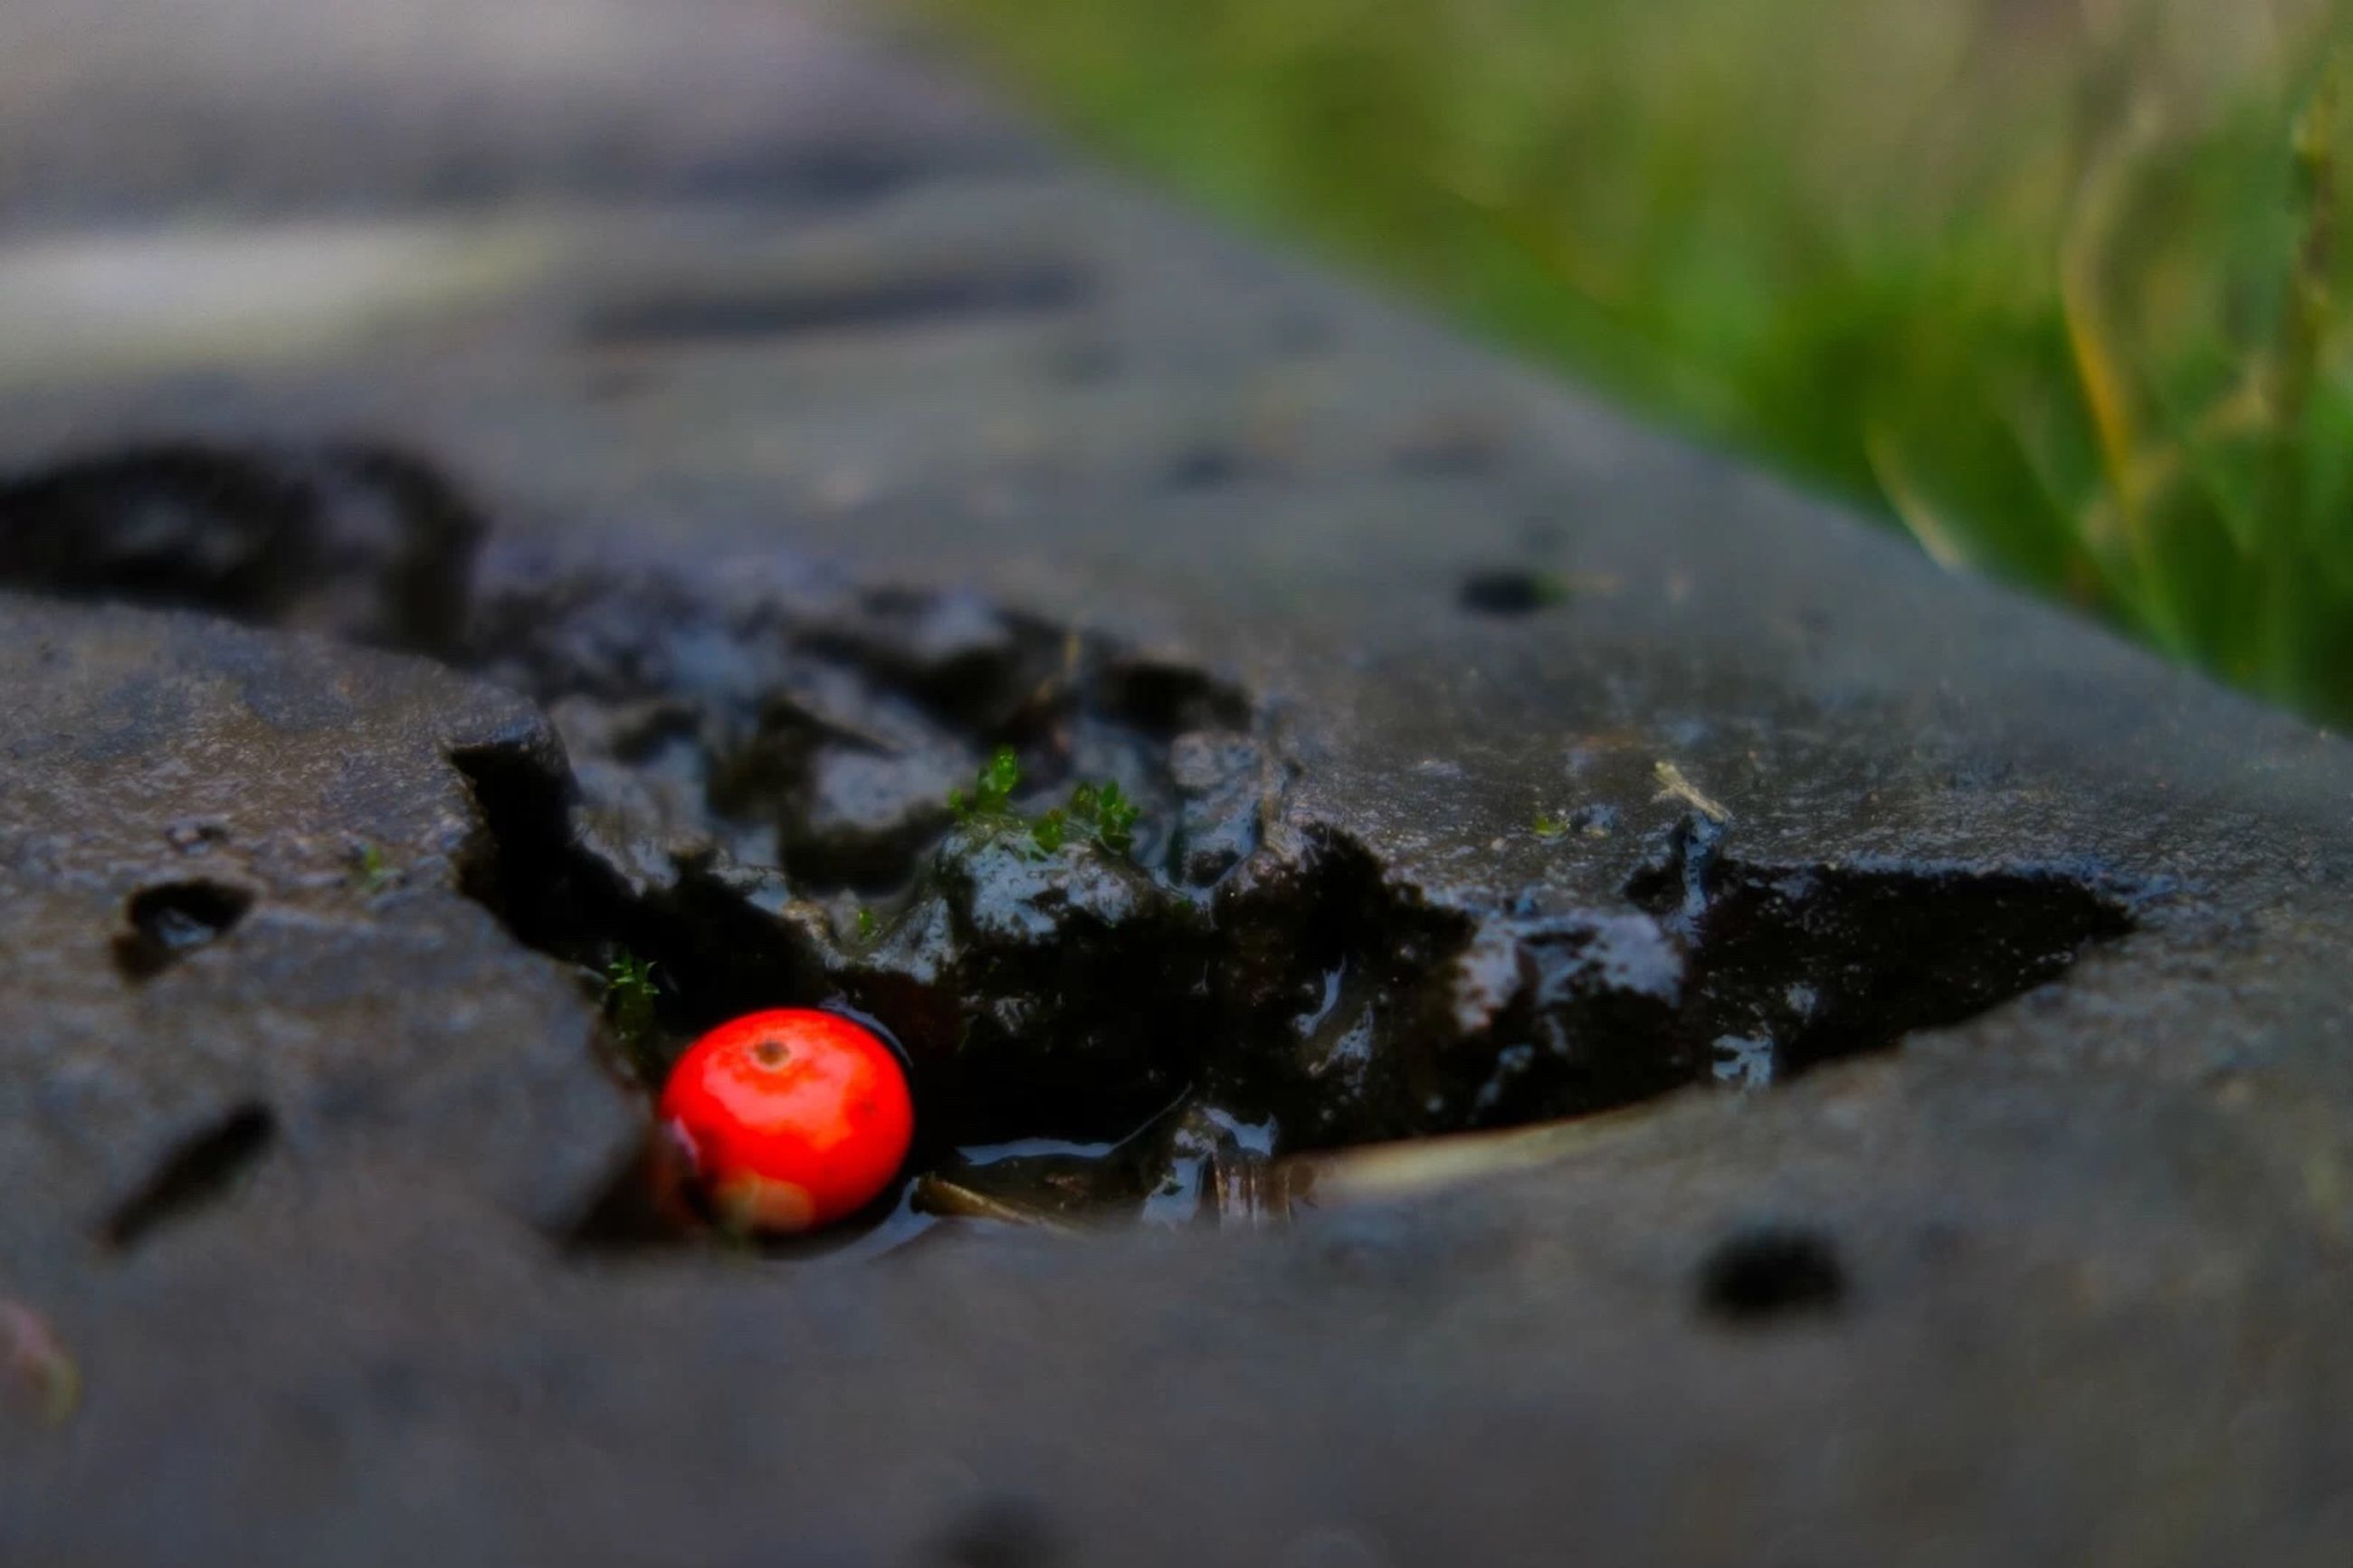 red, selective focus, close-up, focus on foreground, no people, nature, day, food and drink, damaged, insect, high angle view, fruit, abandoned, outdoors, still life, rock - object, food, surface level, textured, ladybug